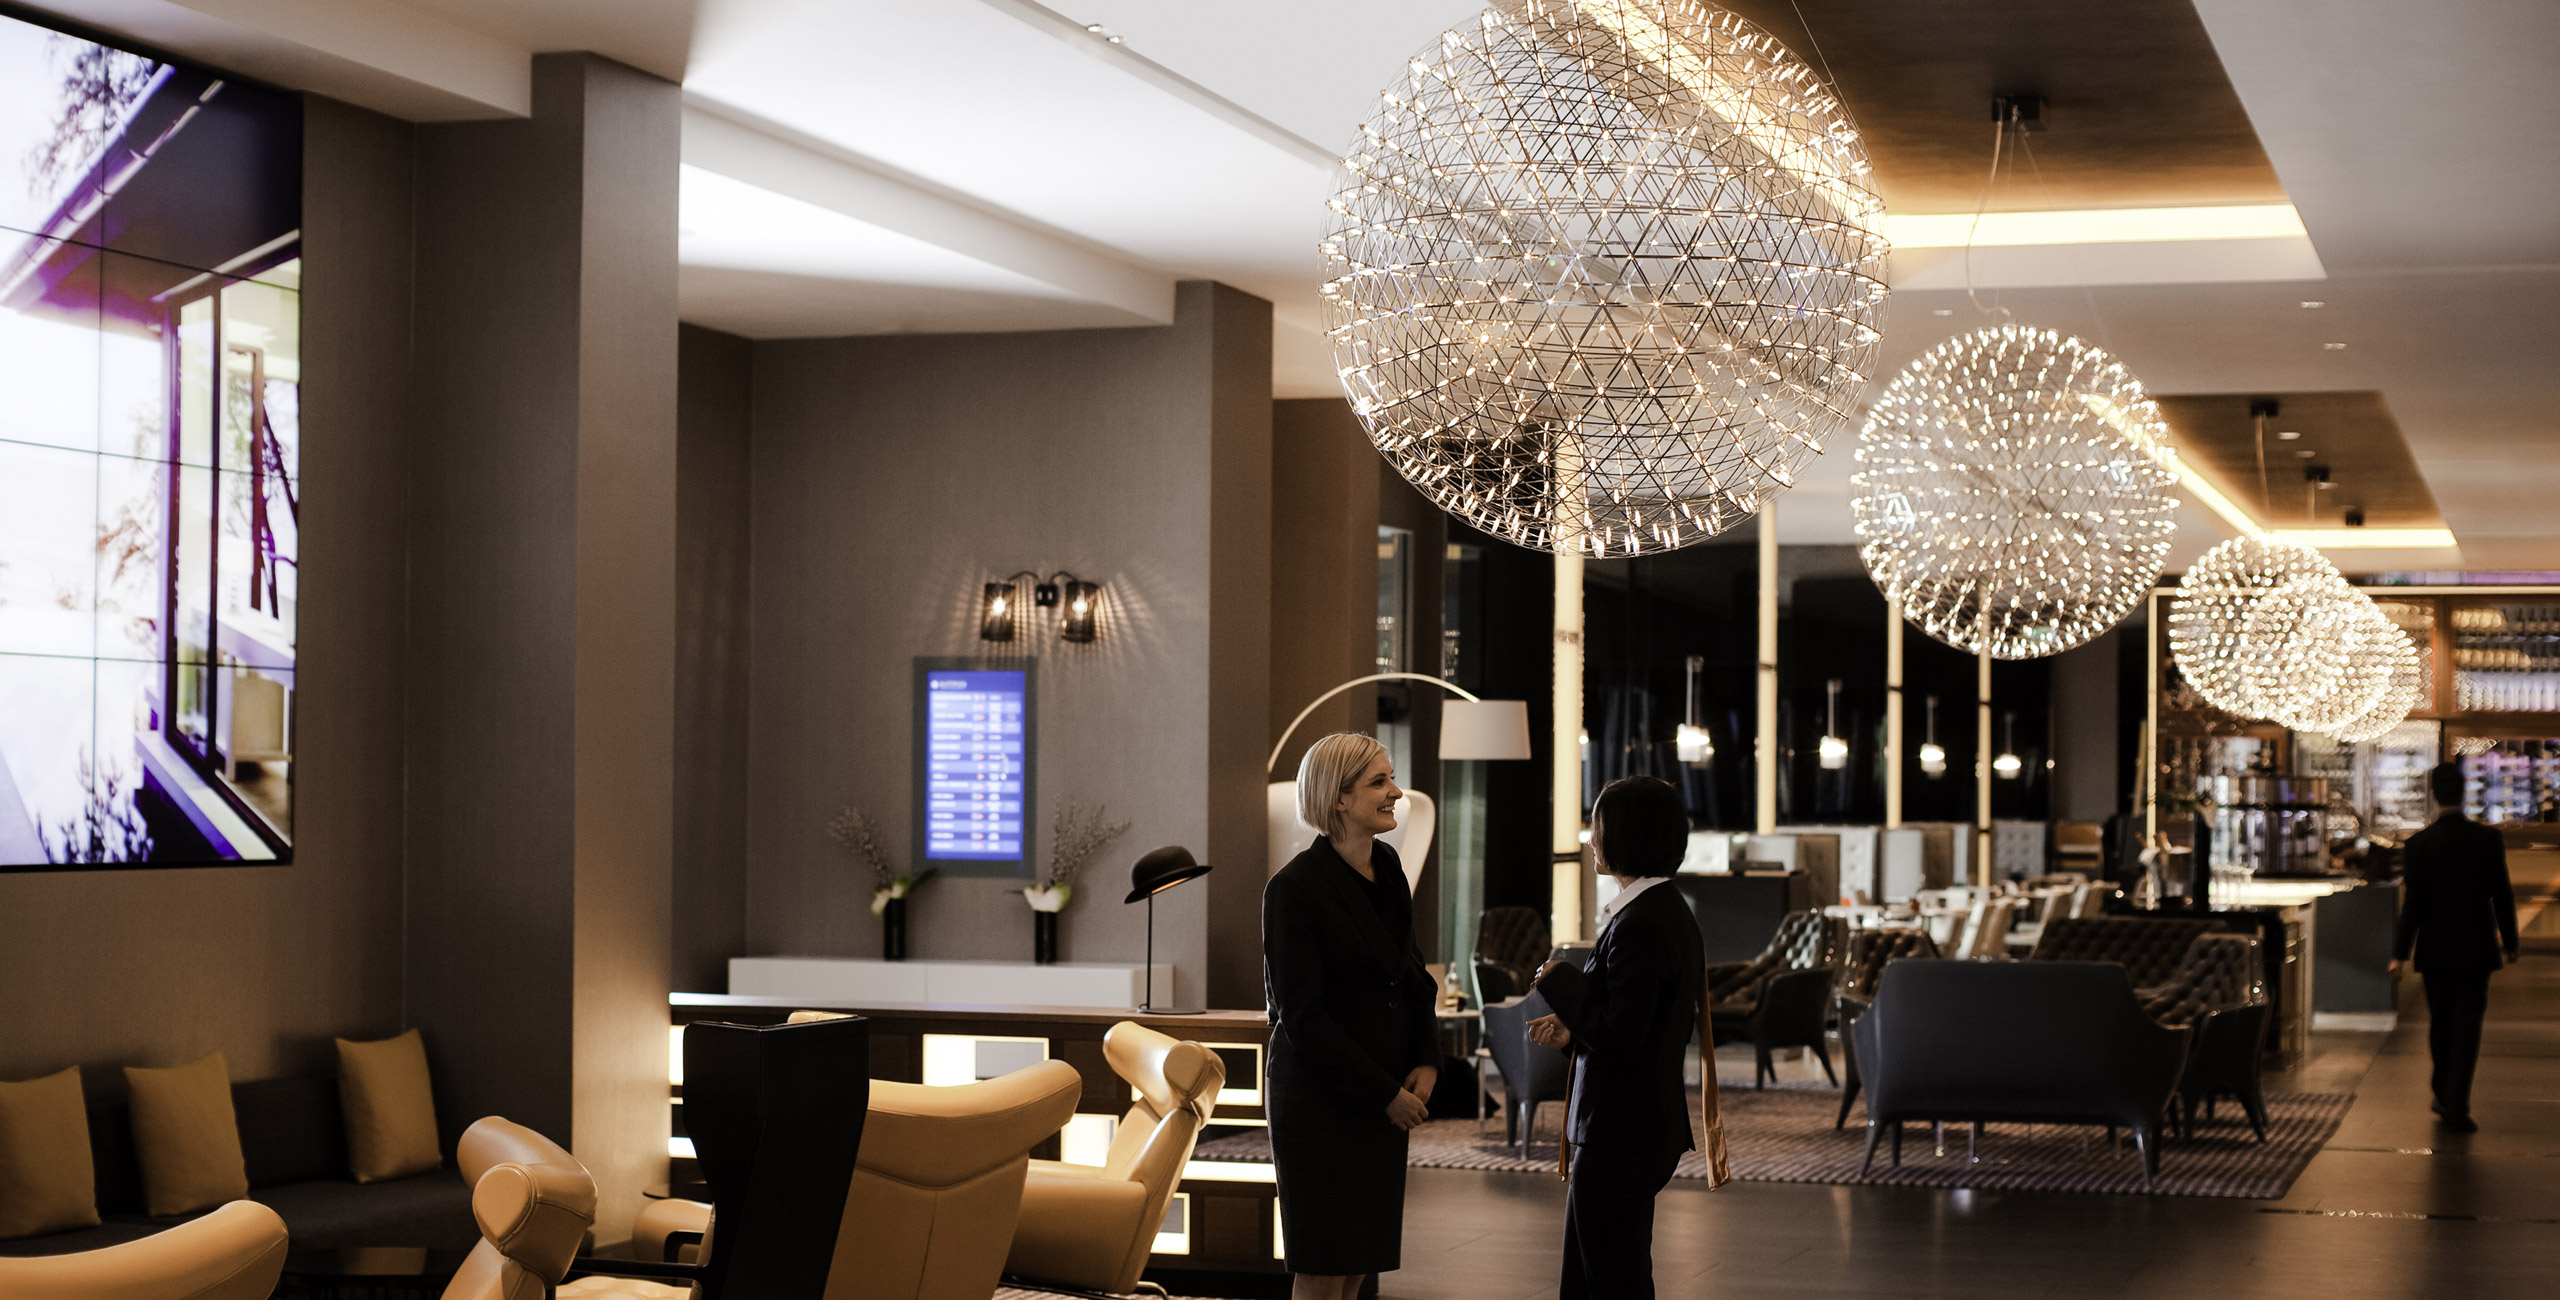 into lighting consultants design lighting scheme for pullman hotel st pancras london